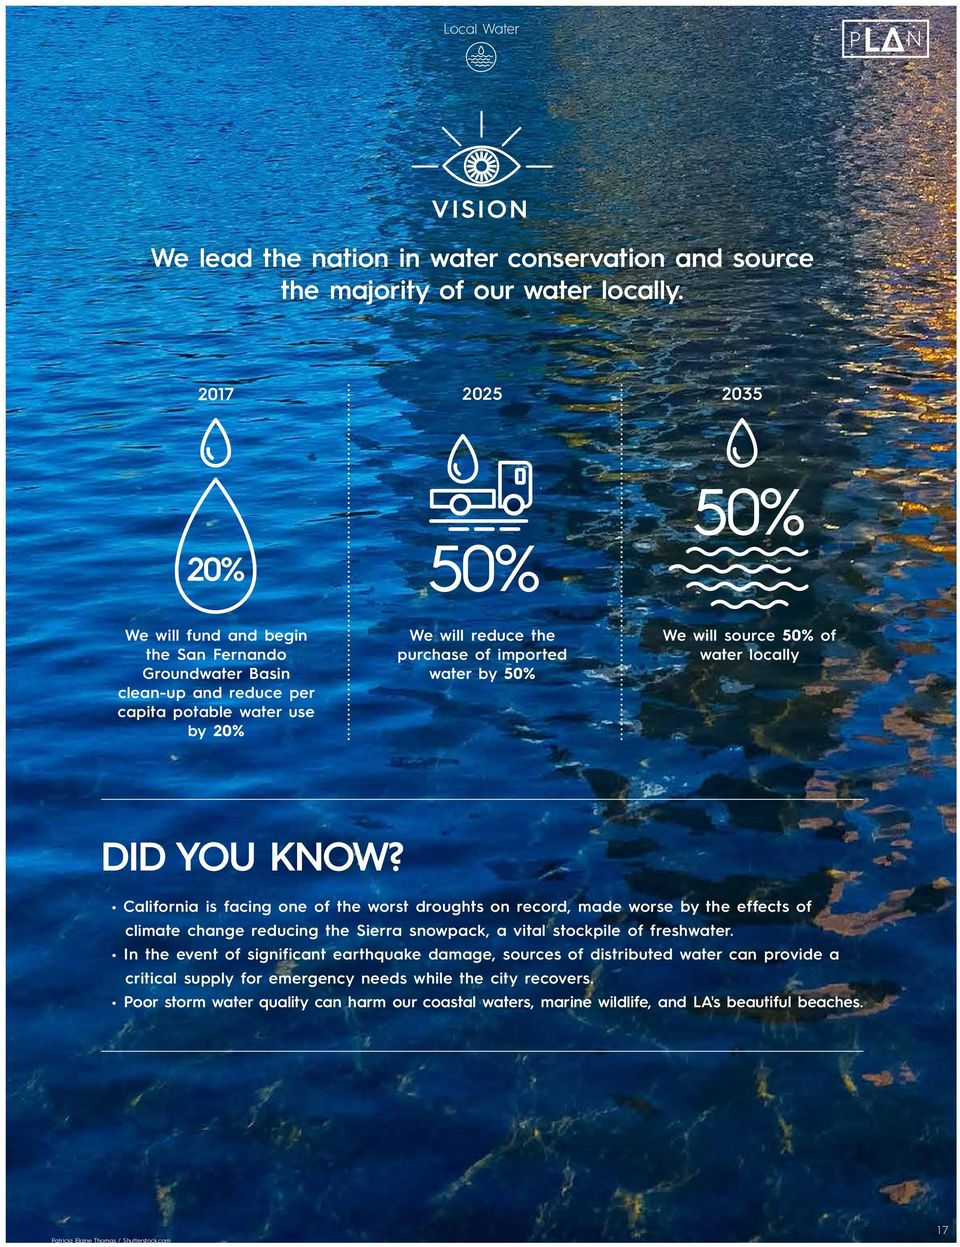 will source 50% of water locally DID YOU KNOW?